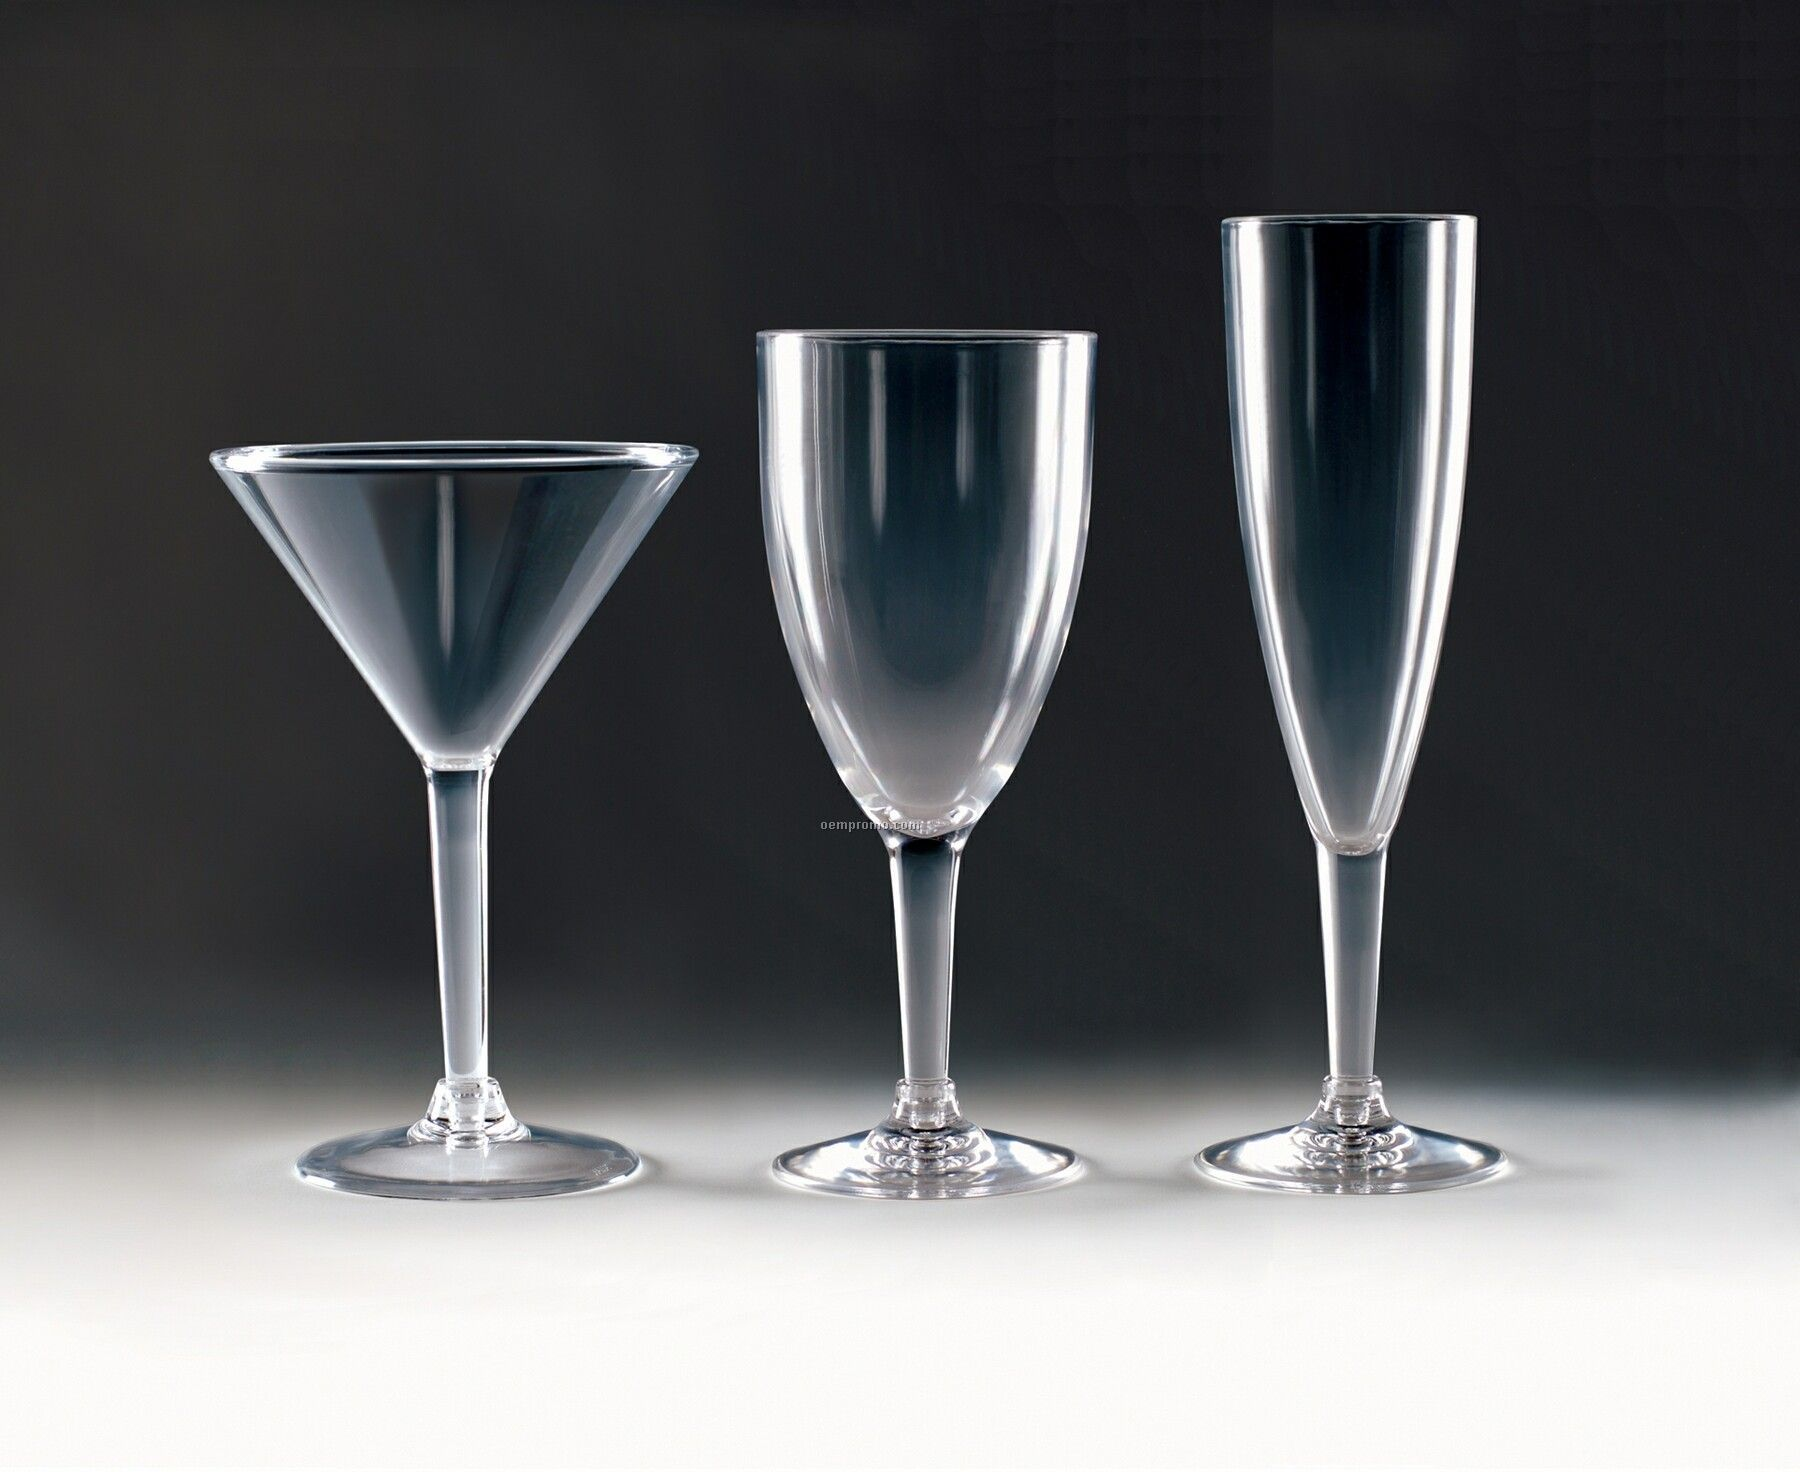 11c8caee7b0 Wholesale Wine Glasses Etched